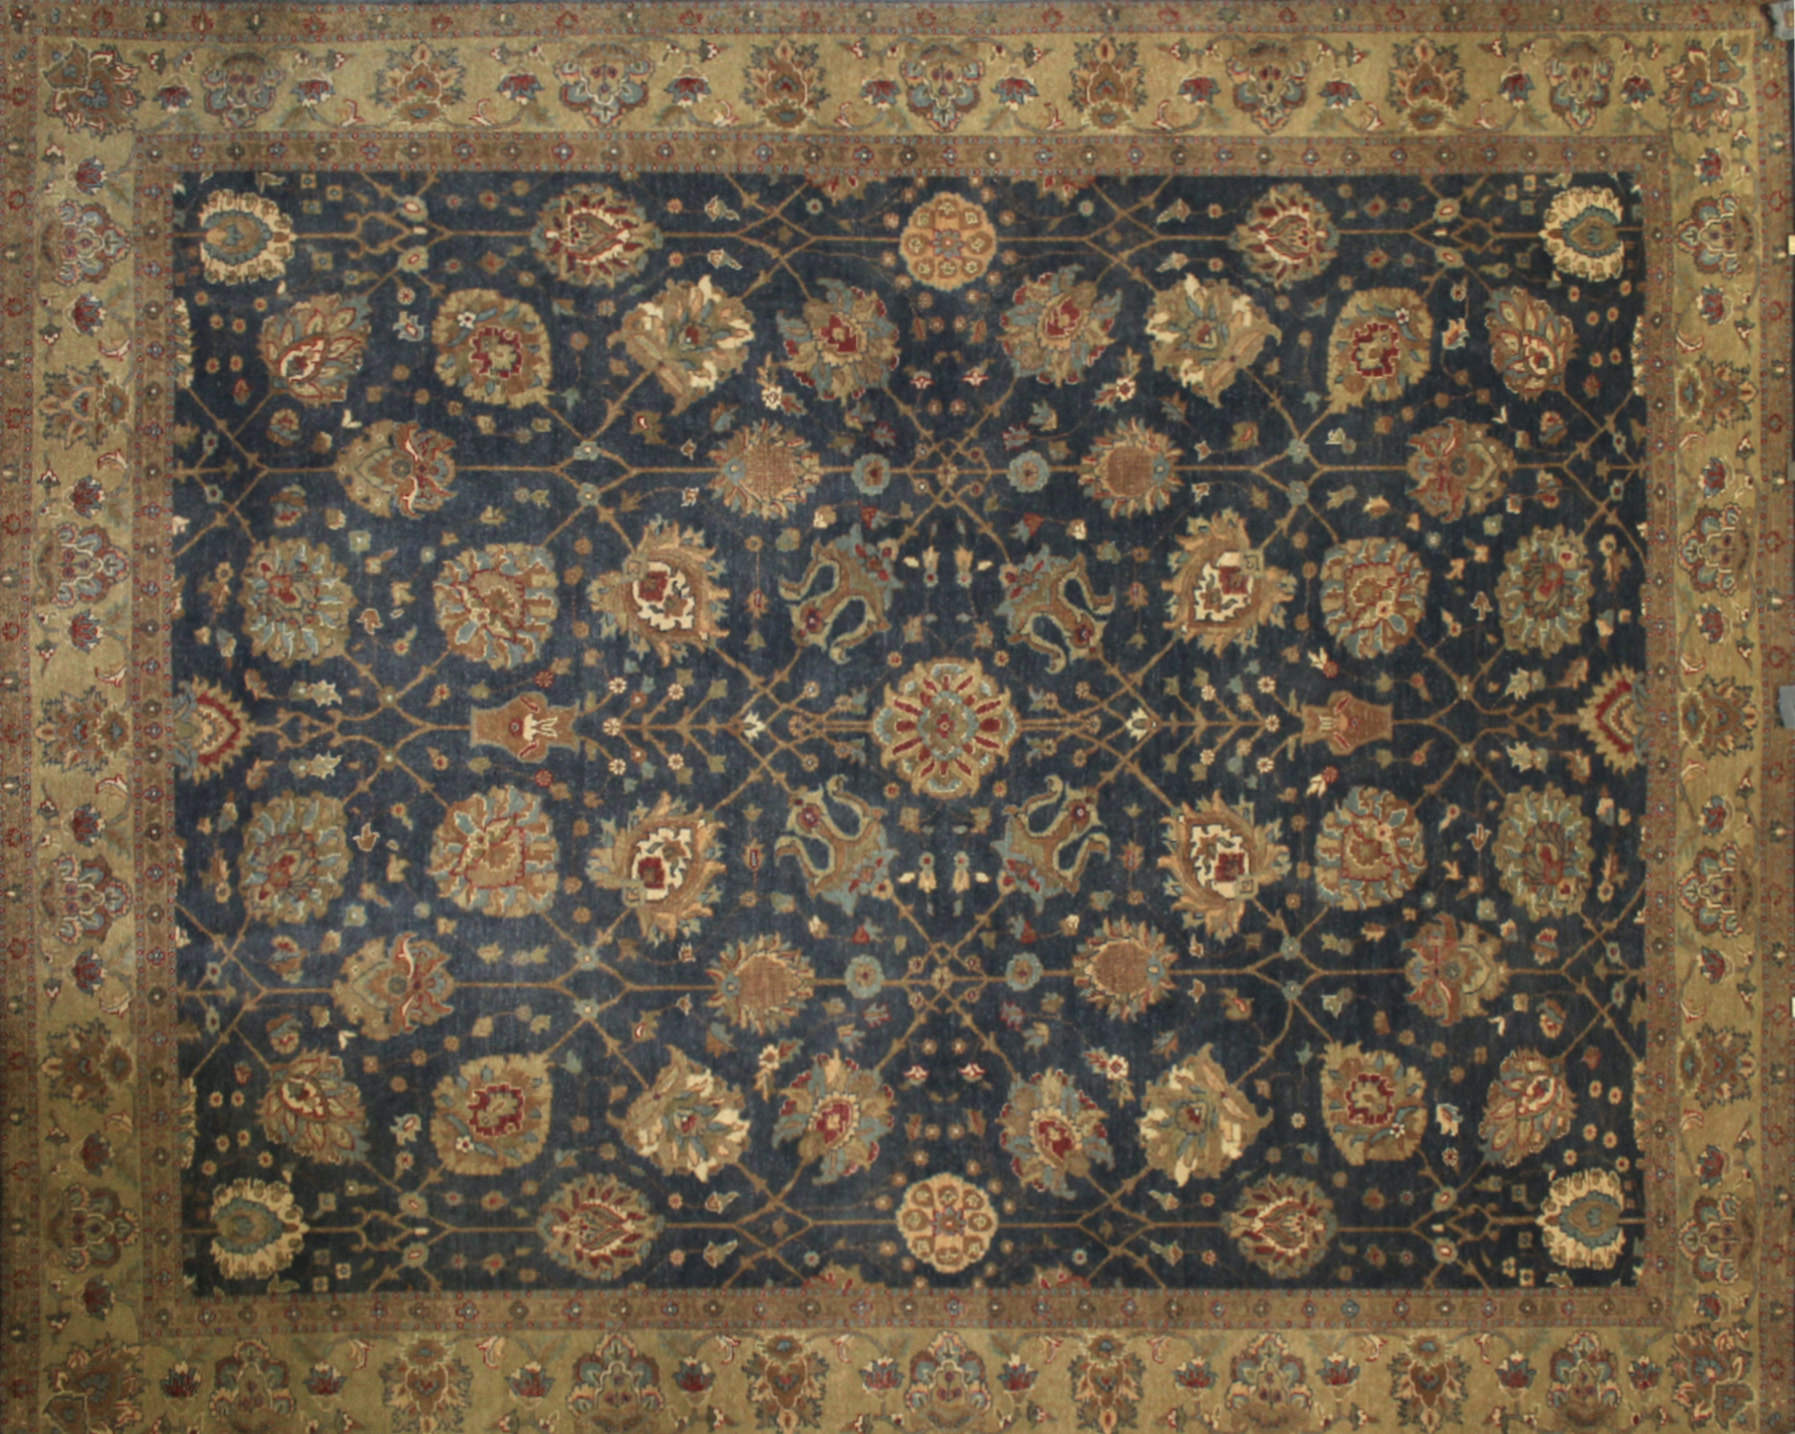 8x10 Traditional Hand Knotted Wool Area Rug - MR6191